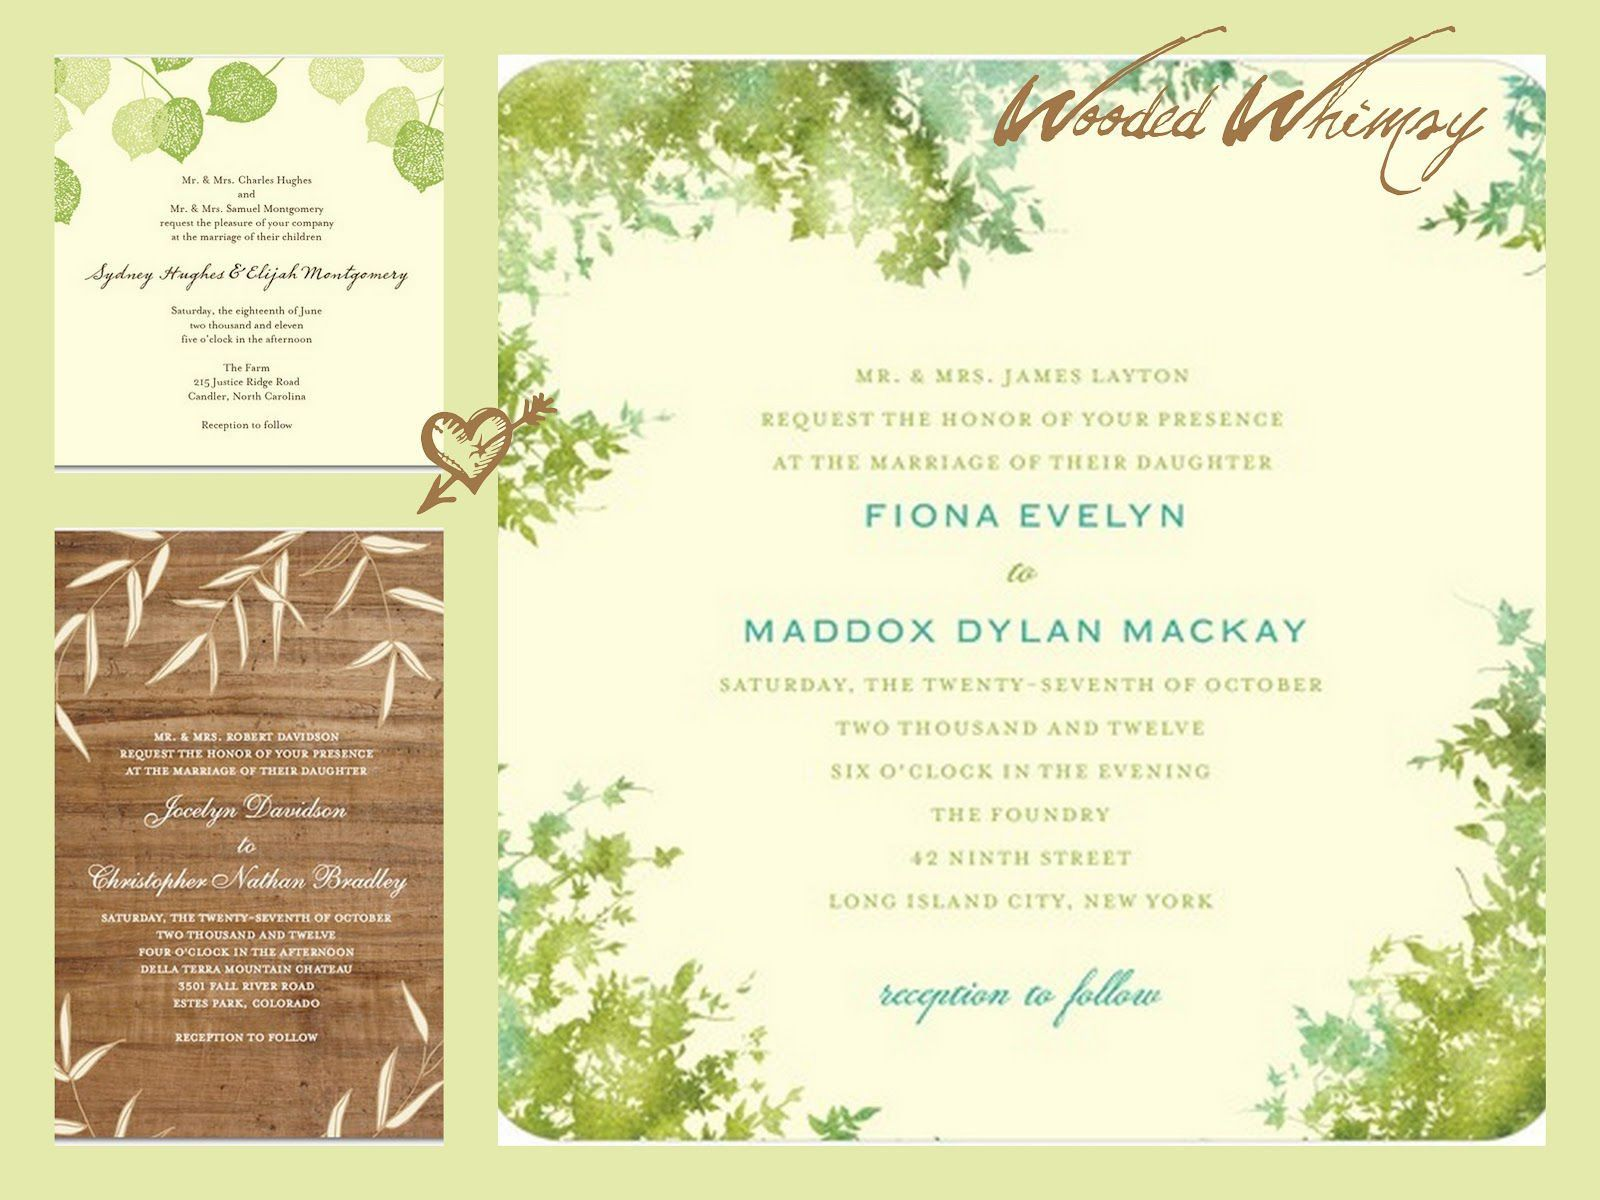 Wedding invitation wedding invitations templates invitations wedding invitation sample cards church wedding is the means to tie the knot couples decided to go for civil wedding stopboris Image collections